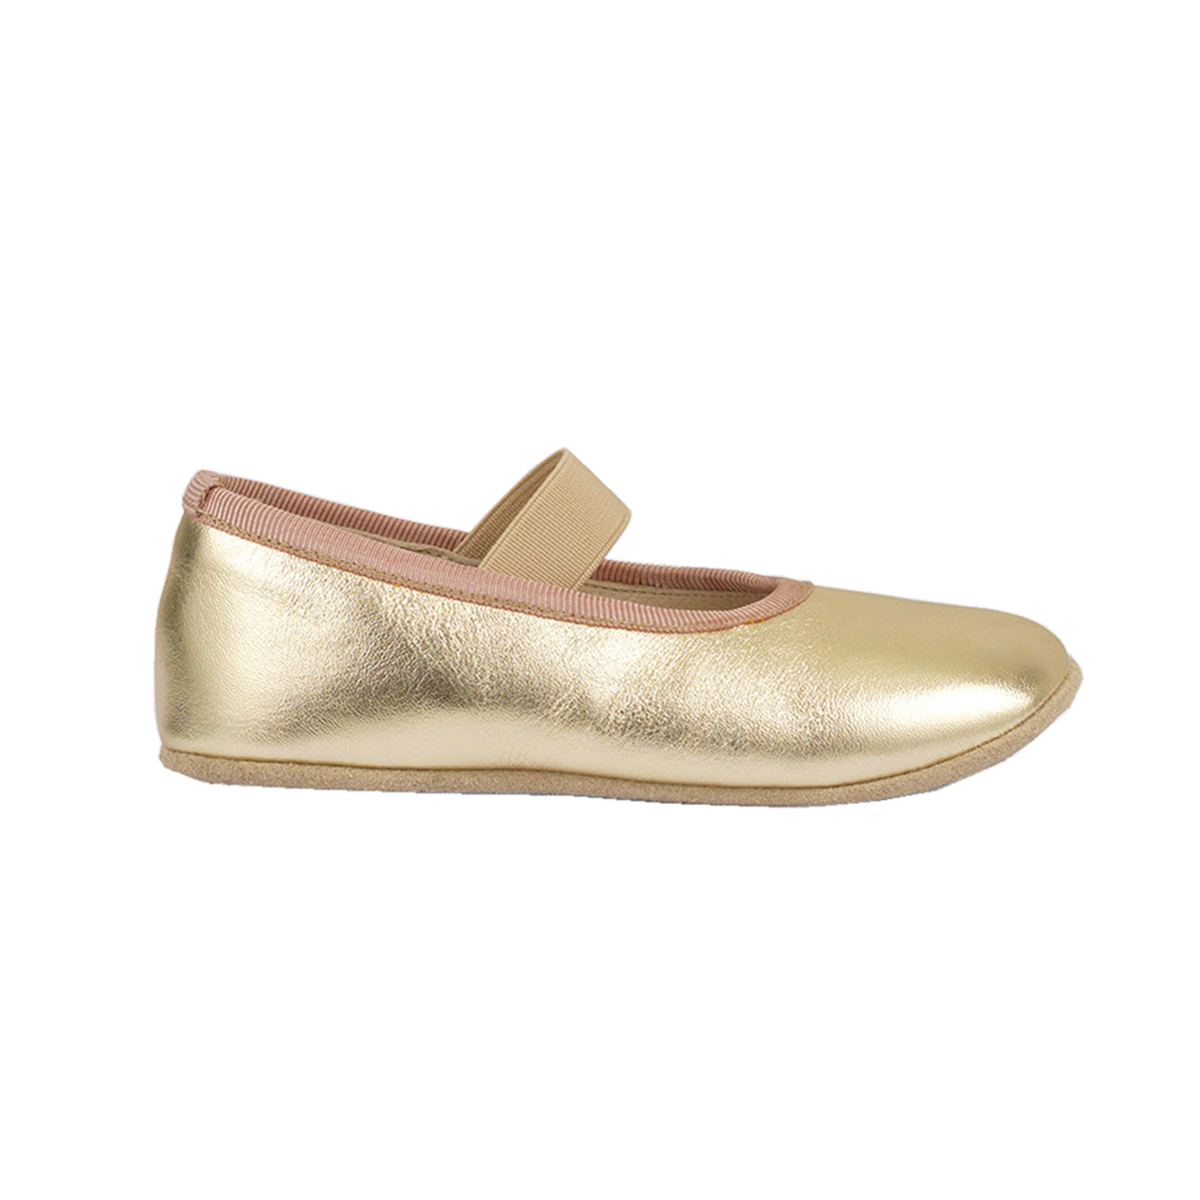 Petit Nord Gold Ballerina flats with elastic strap